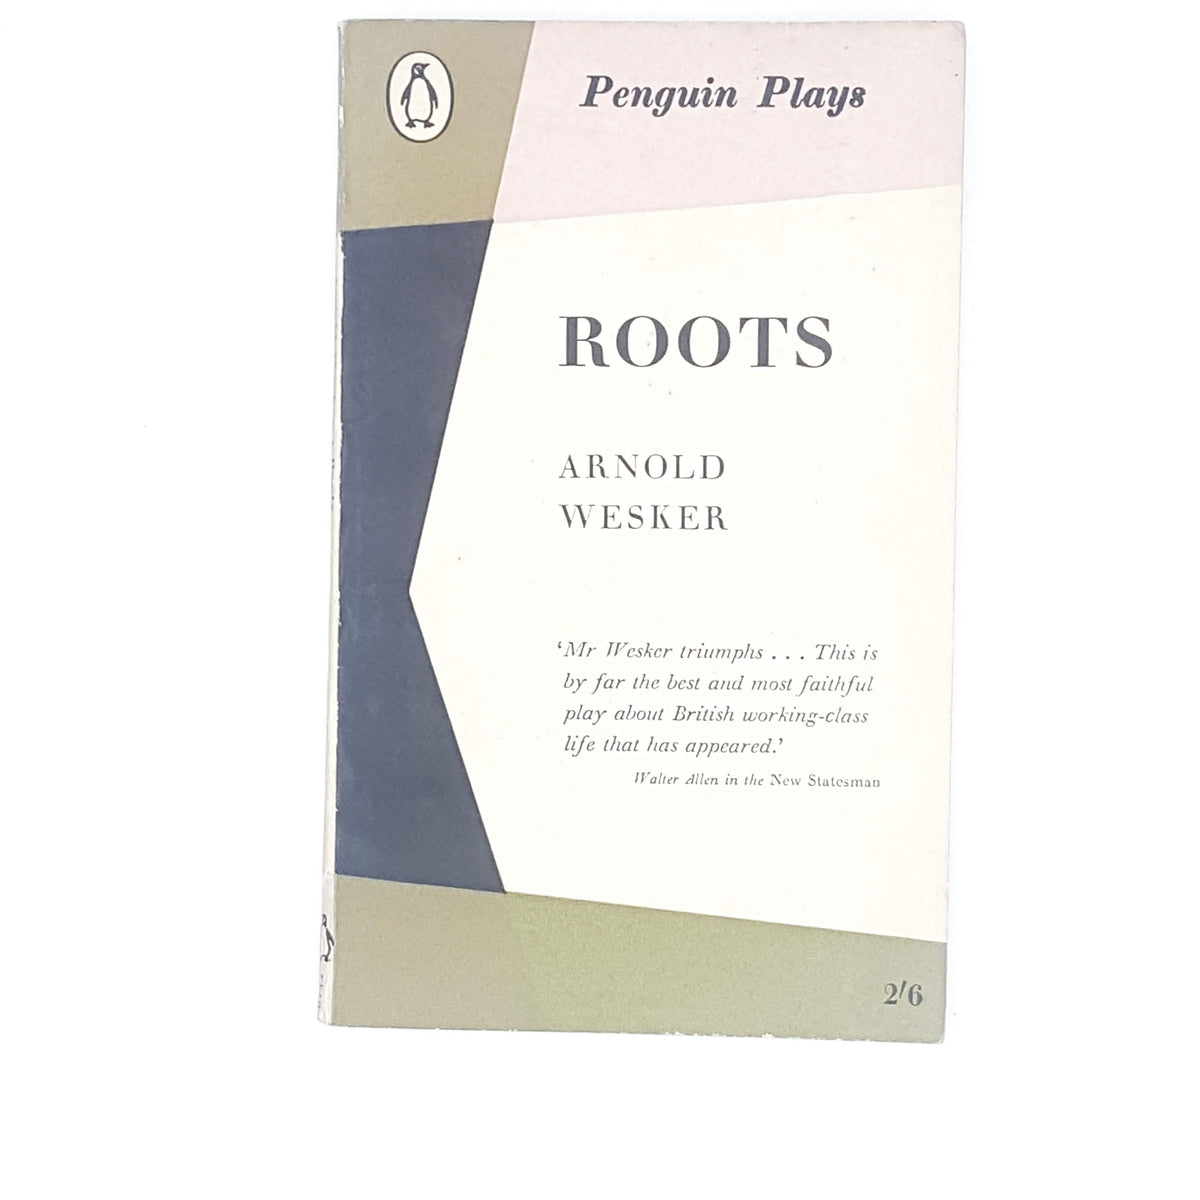 Roots by Arnold Wesker 1959